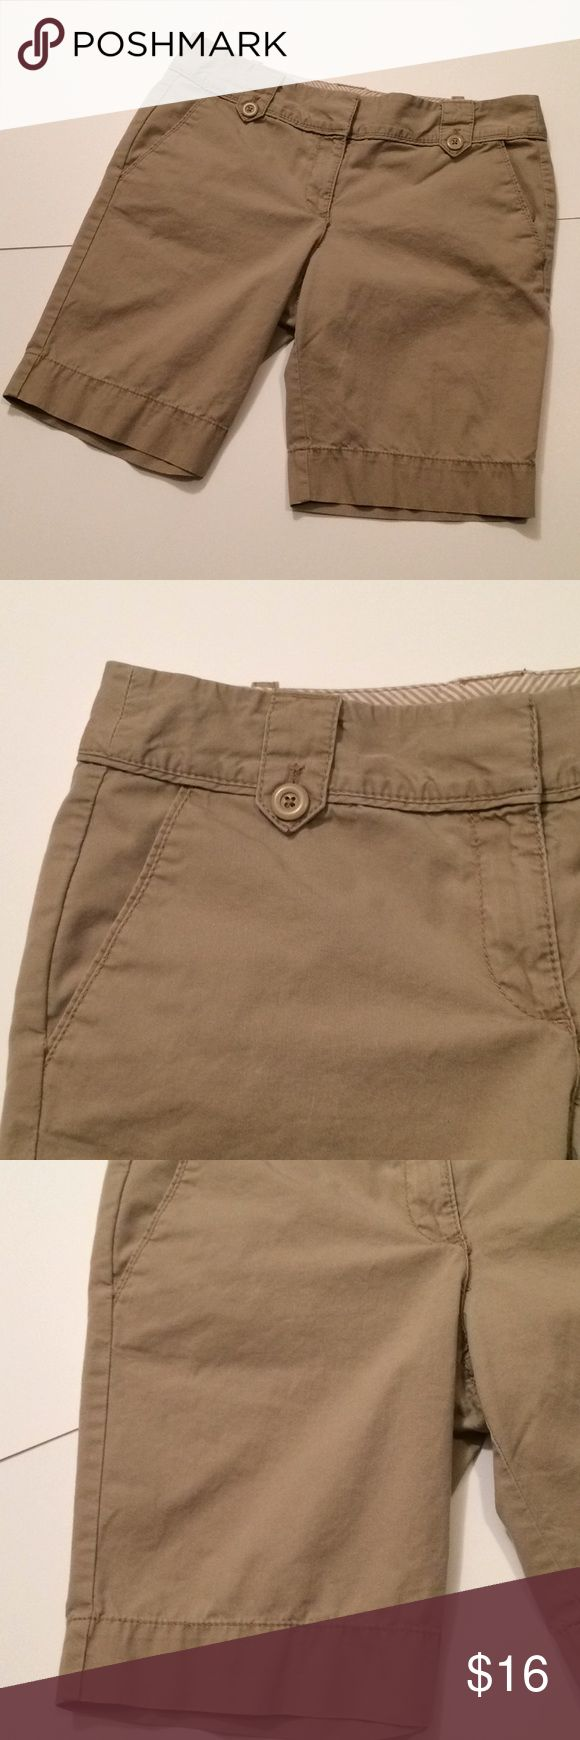 "$13 euc loft tan chino style shorts Euc! ✔The price in the beginning of the title of my listings is the bundle price. These prices are valid through the ""make an offer"" feature after you create a bundle. These bundle orders must be over $15. Ask me about more details if interested.  ❌No trades ❌No holds ❌No model photos ❌No additional measurements LOFT Shorts"